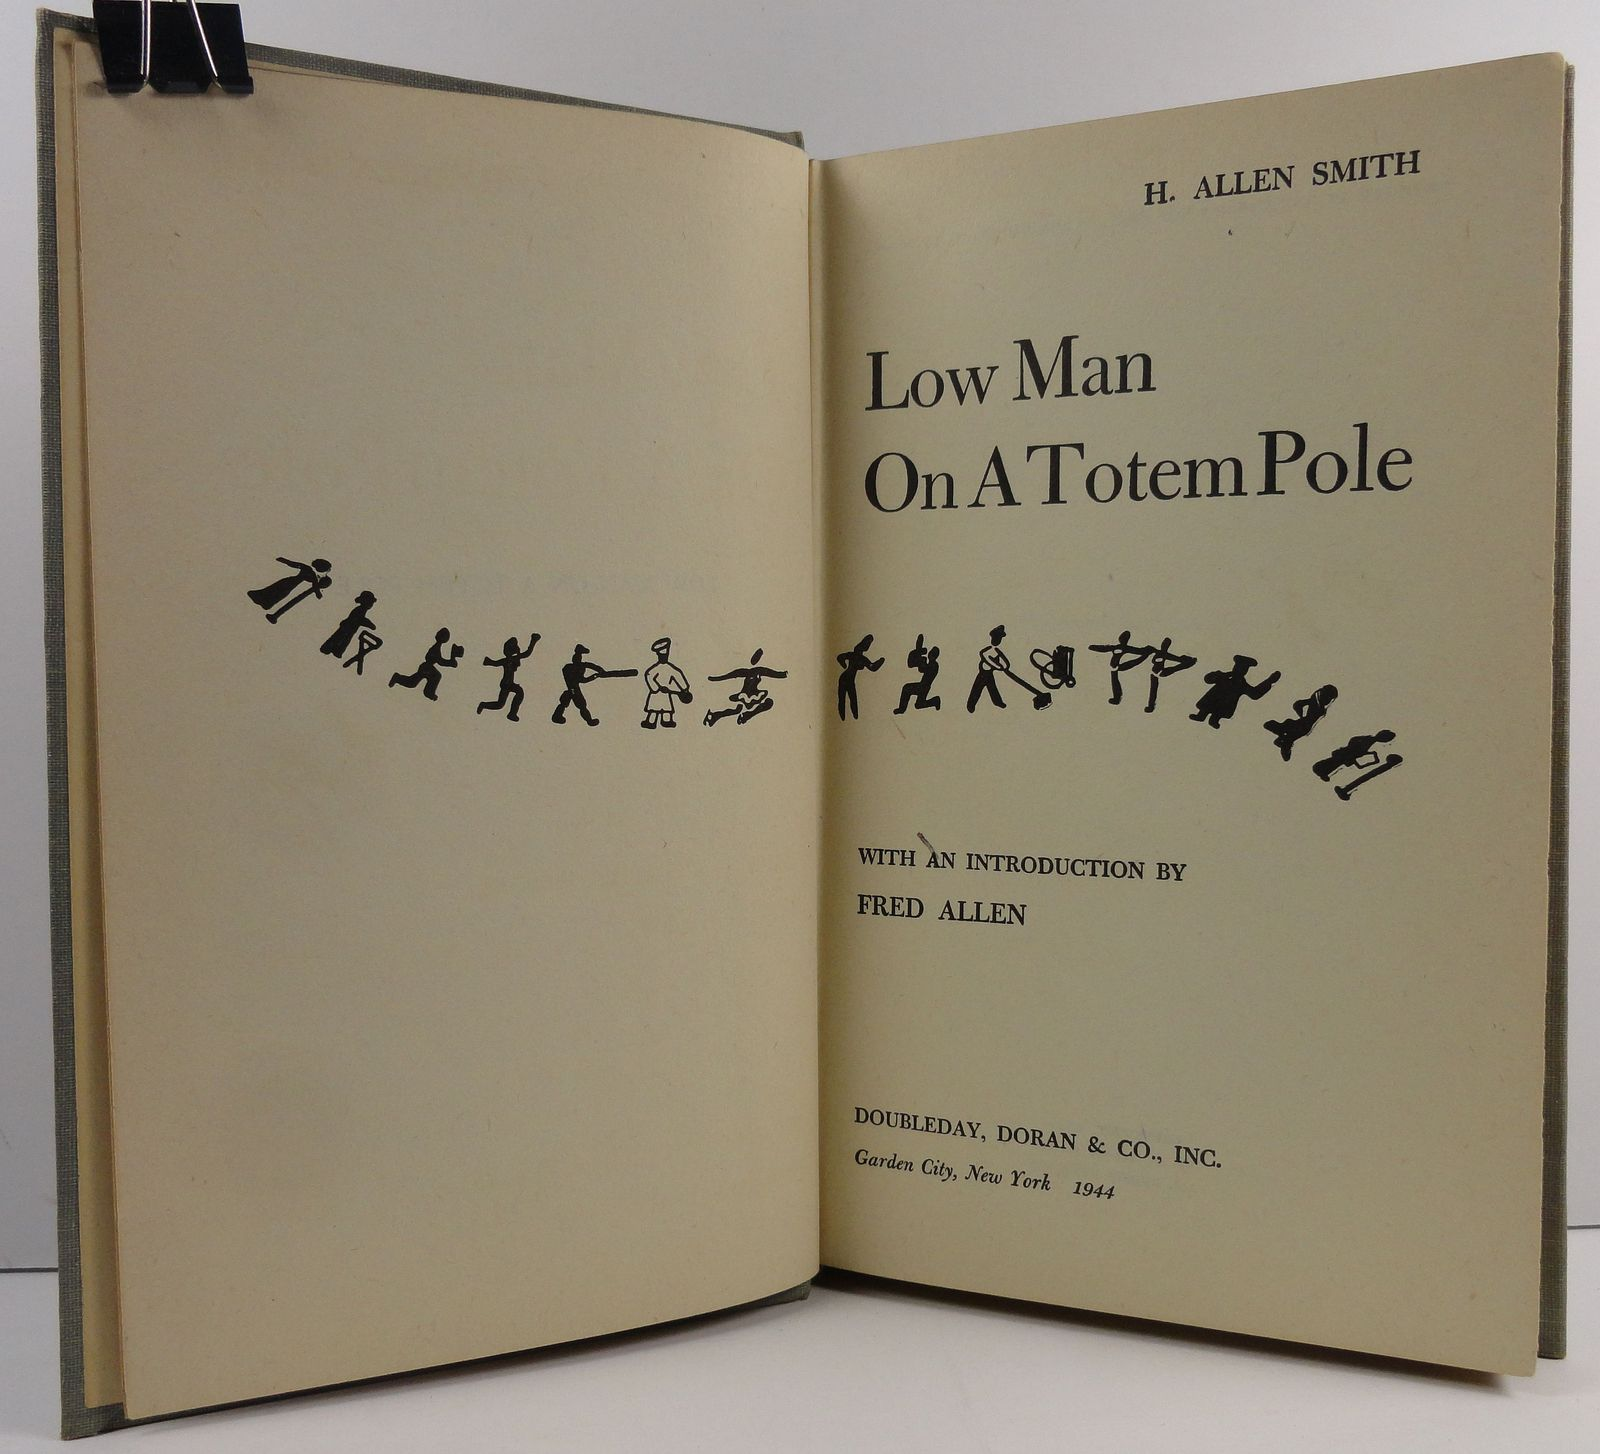 Low Man On A Totem Pole by H. Allen Smith 1944